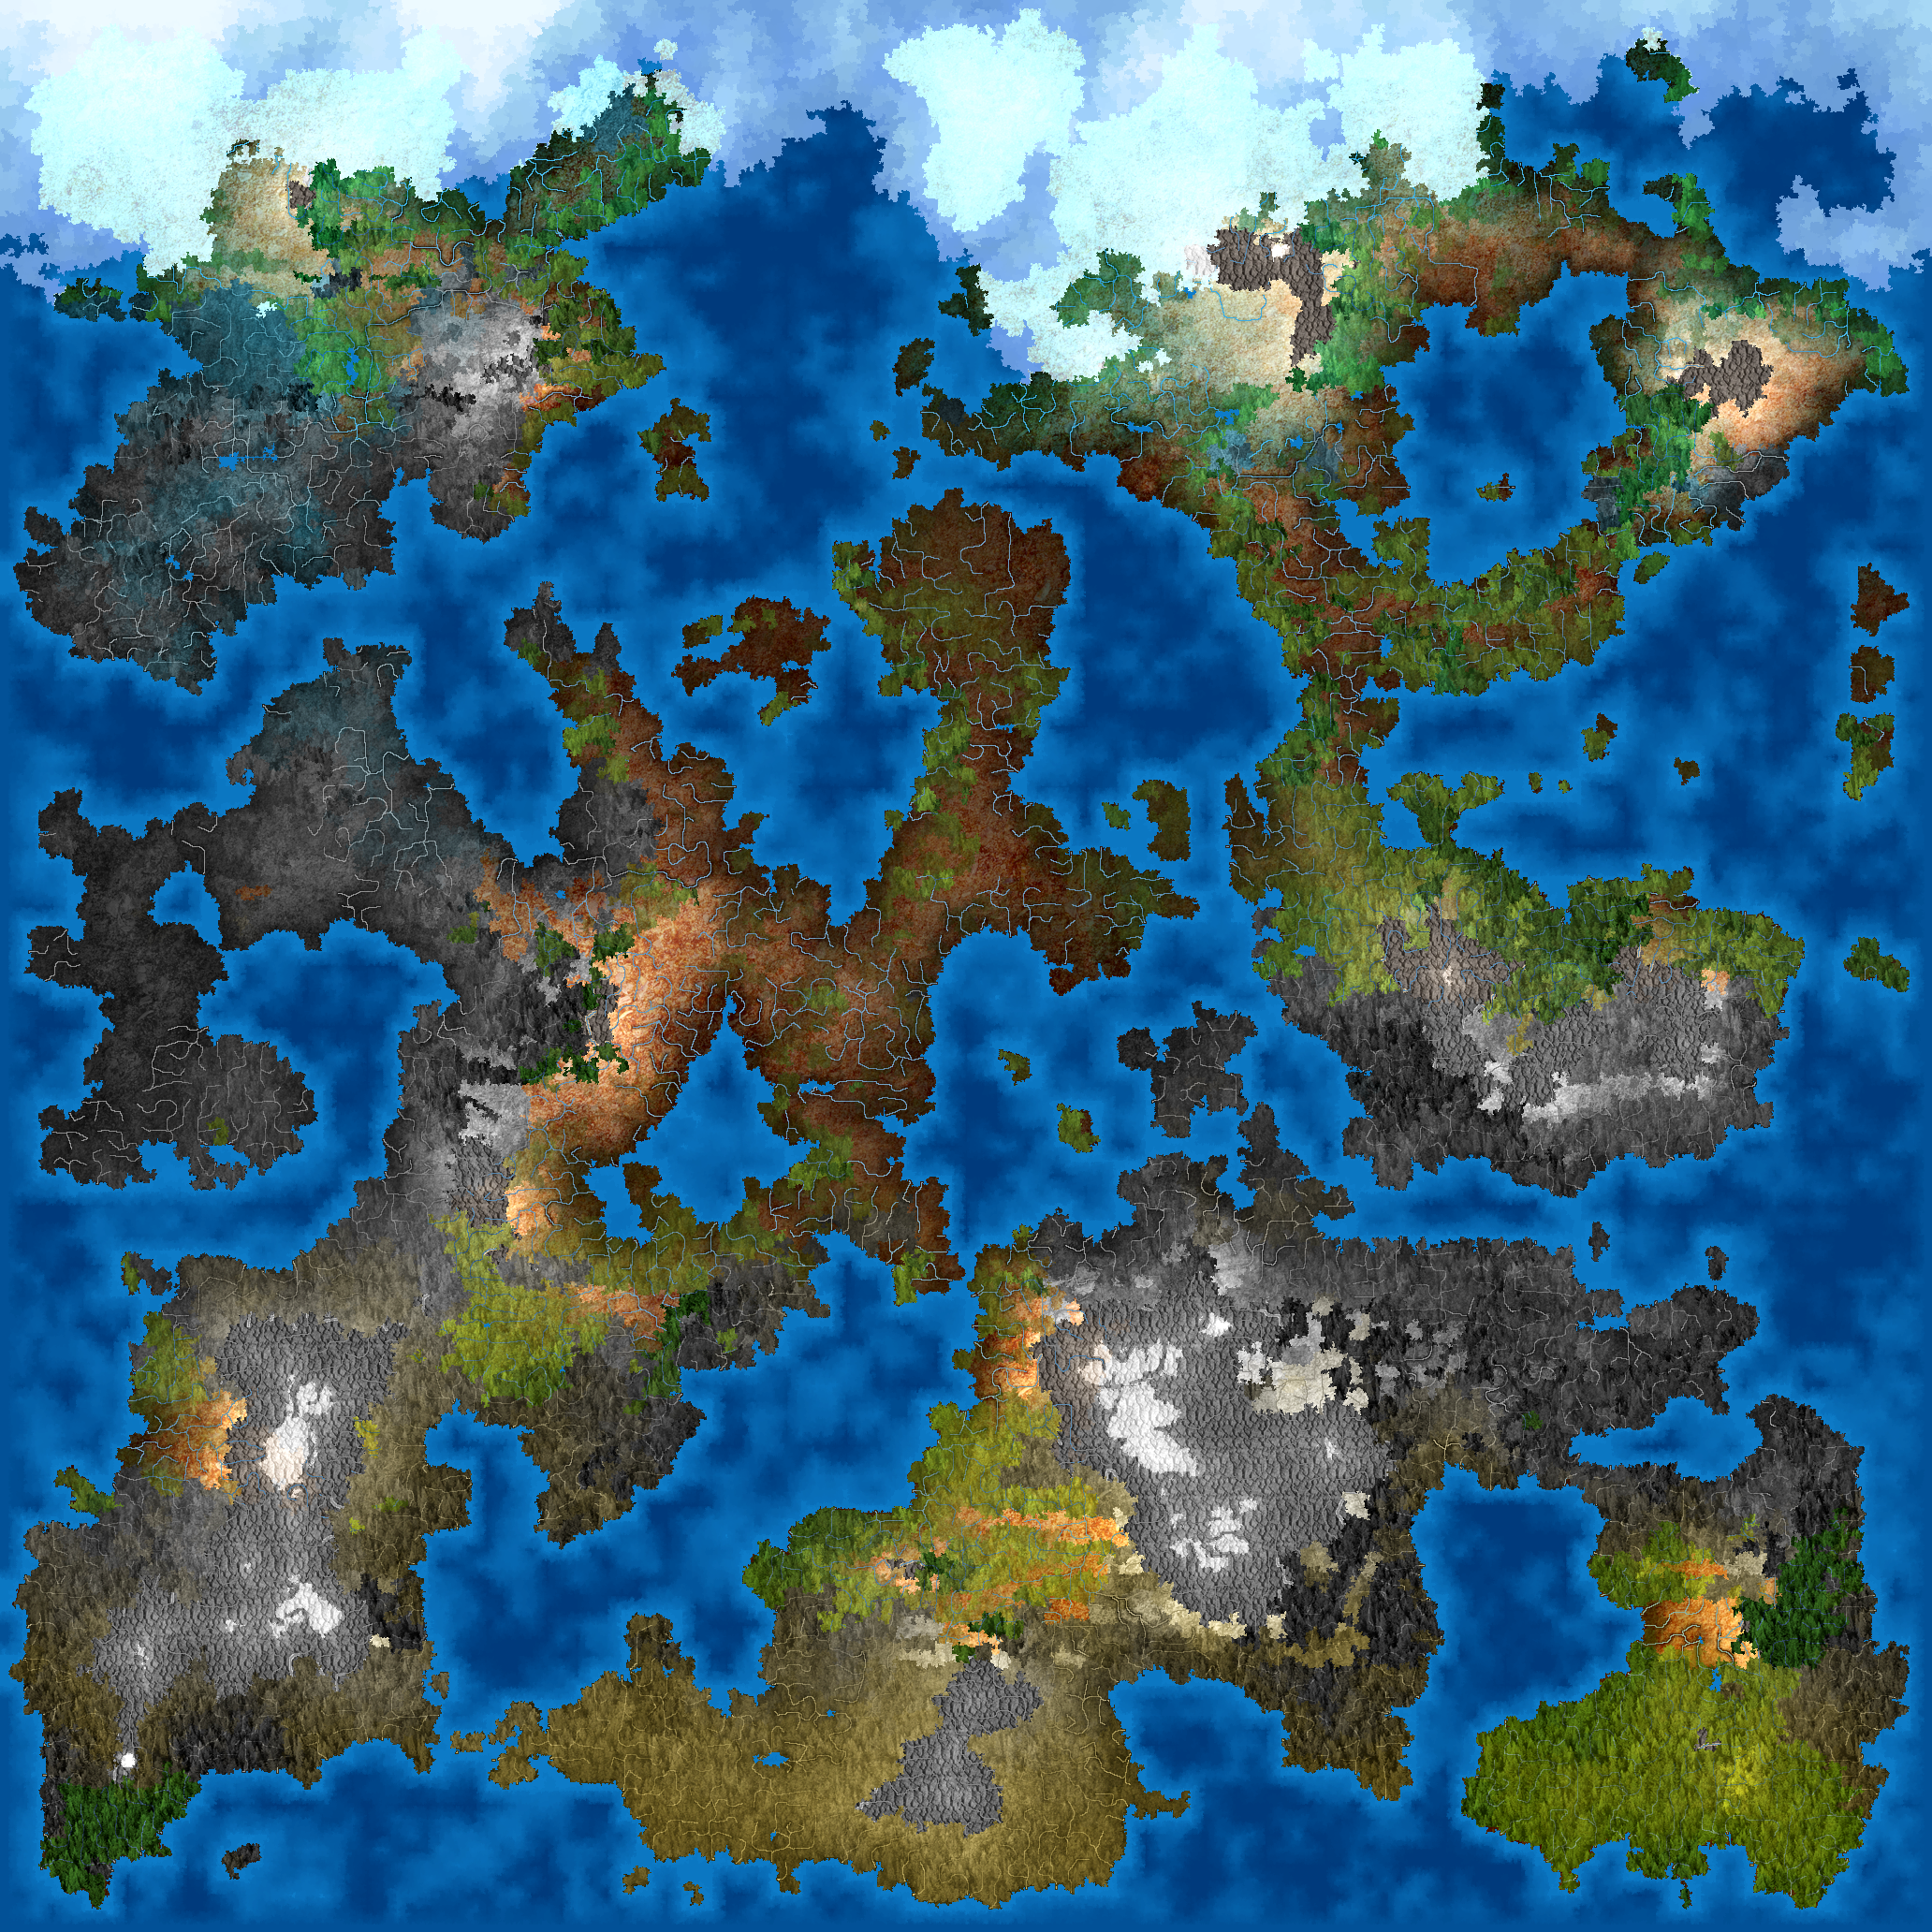 Using dwarf fortress as a map generator skalds forge world map of inalaanenu gumiabroncs Image collections